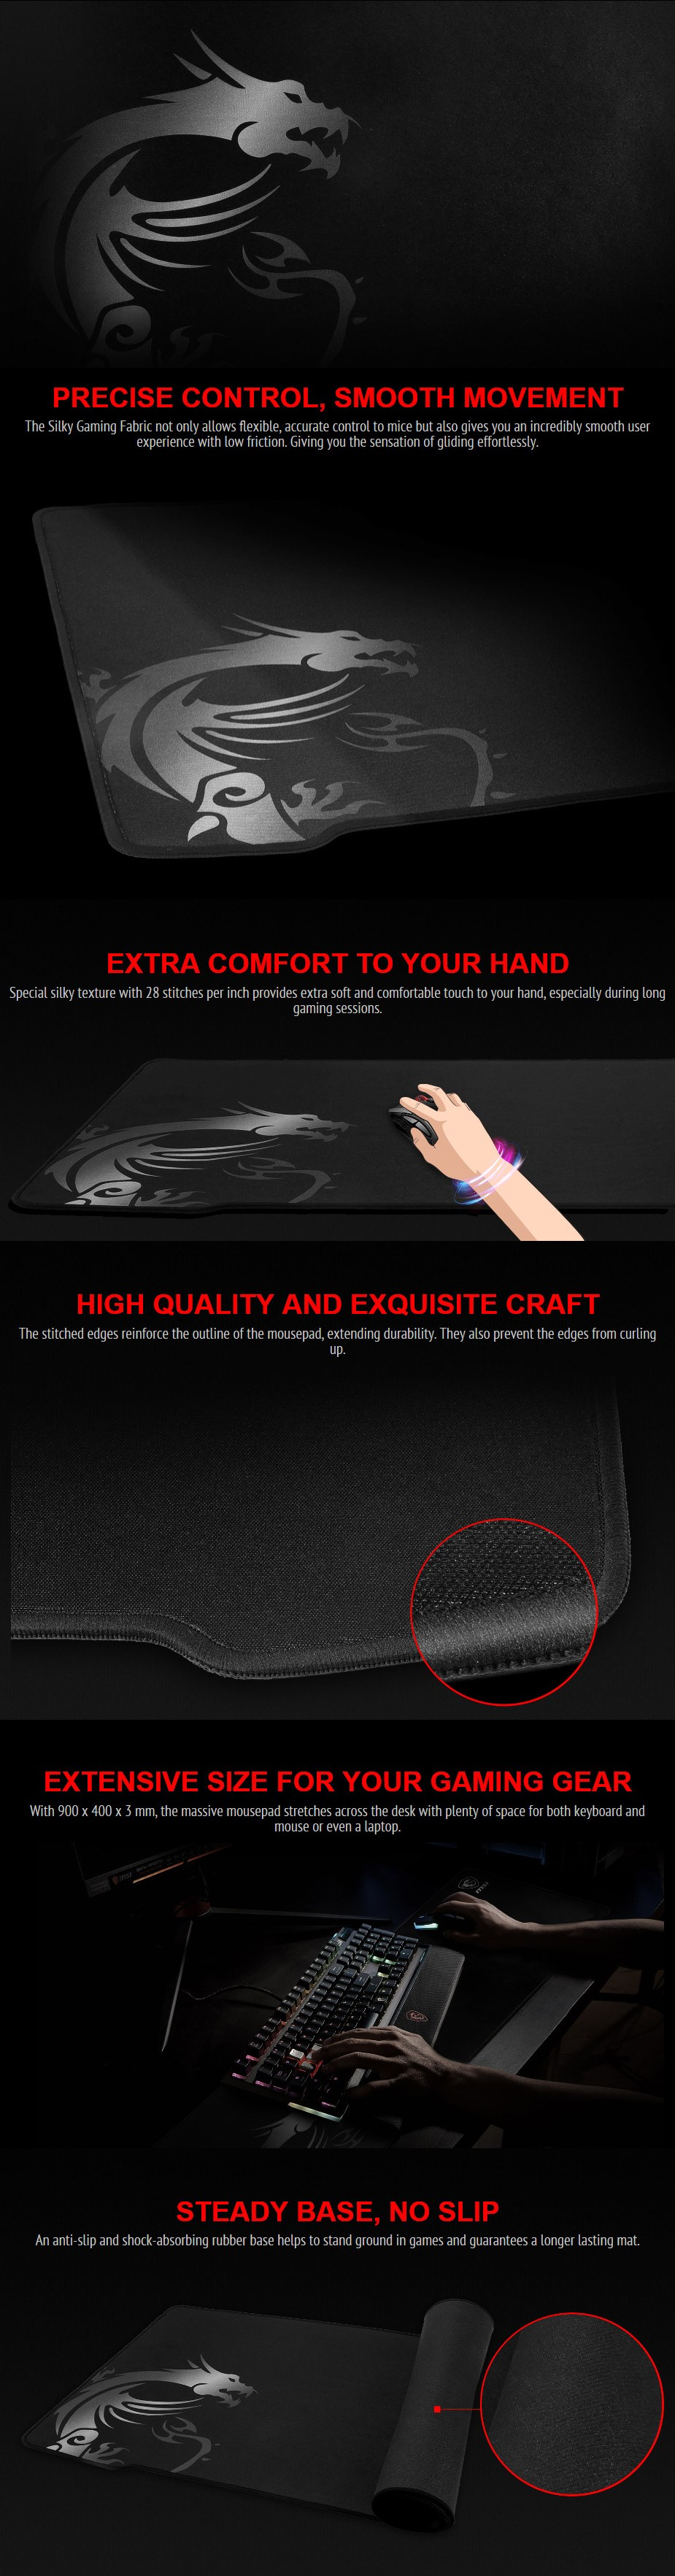 MSI Agility GD70 Gaming Mousepad Display Overview 1